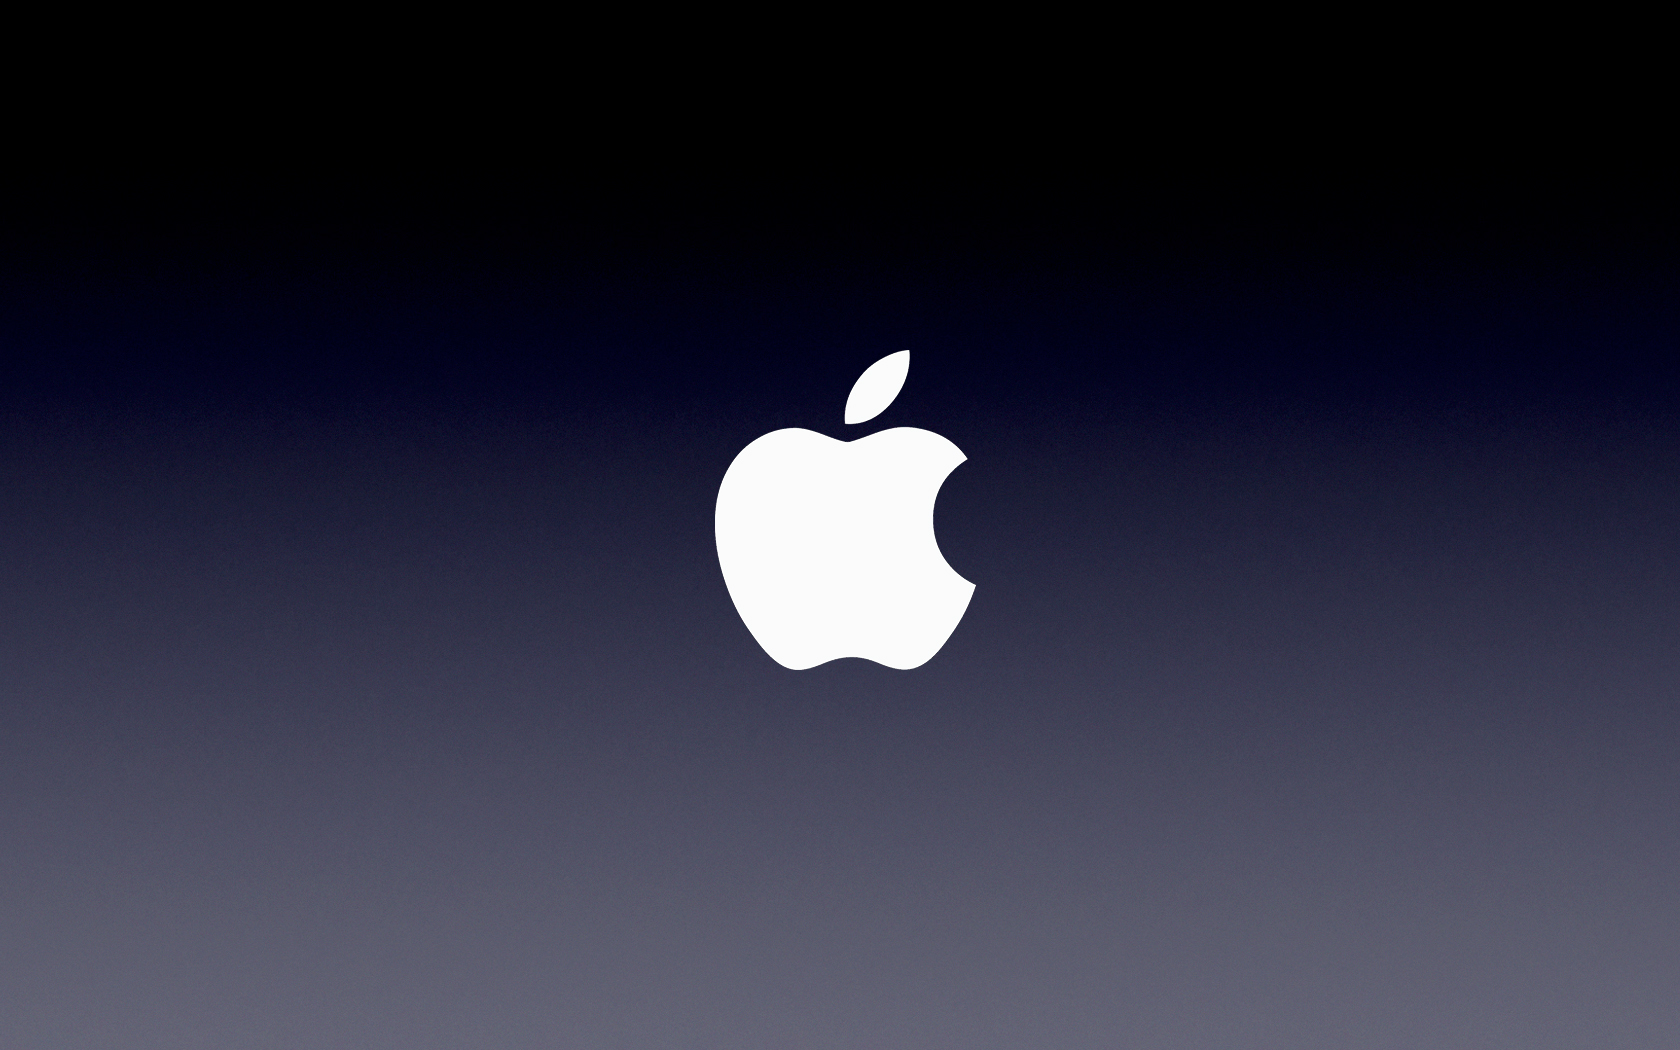 Apple_Keynote_Wallpapers_by_igabapple.jpg